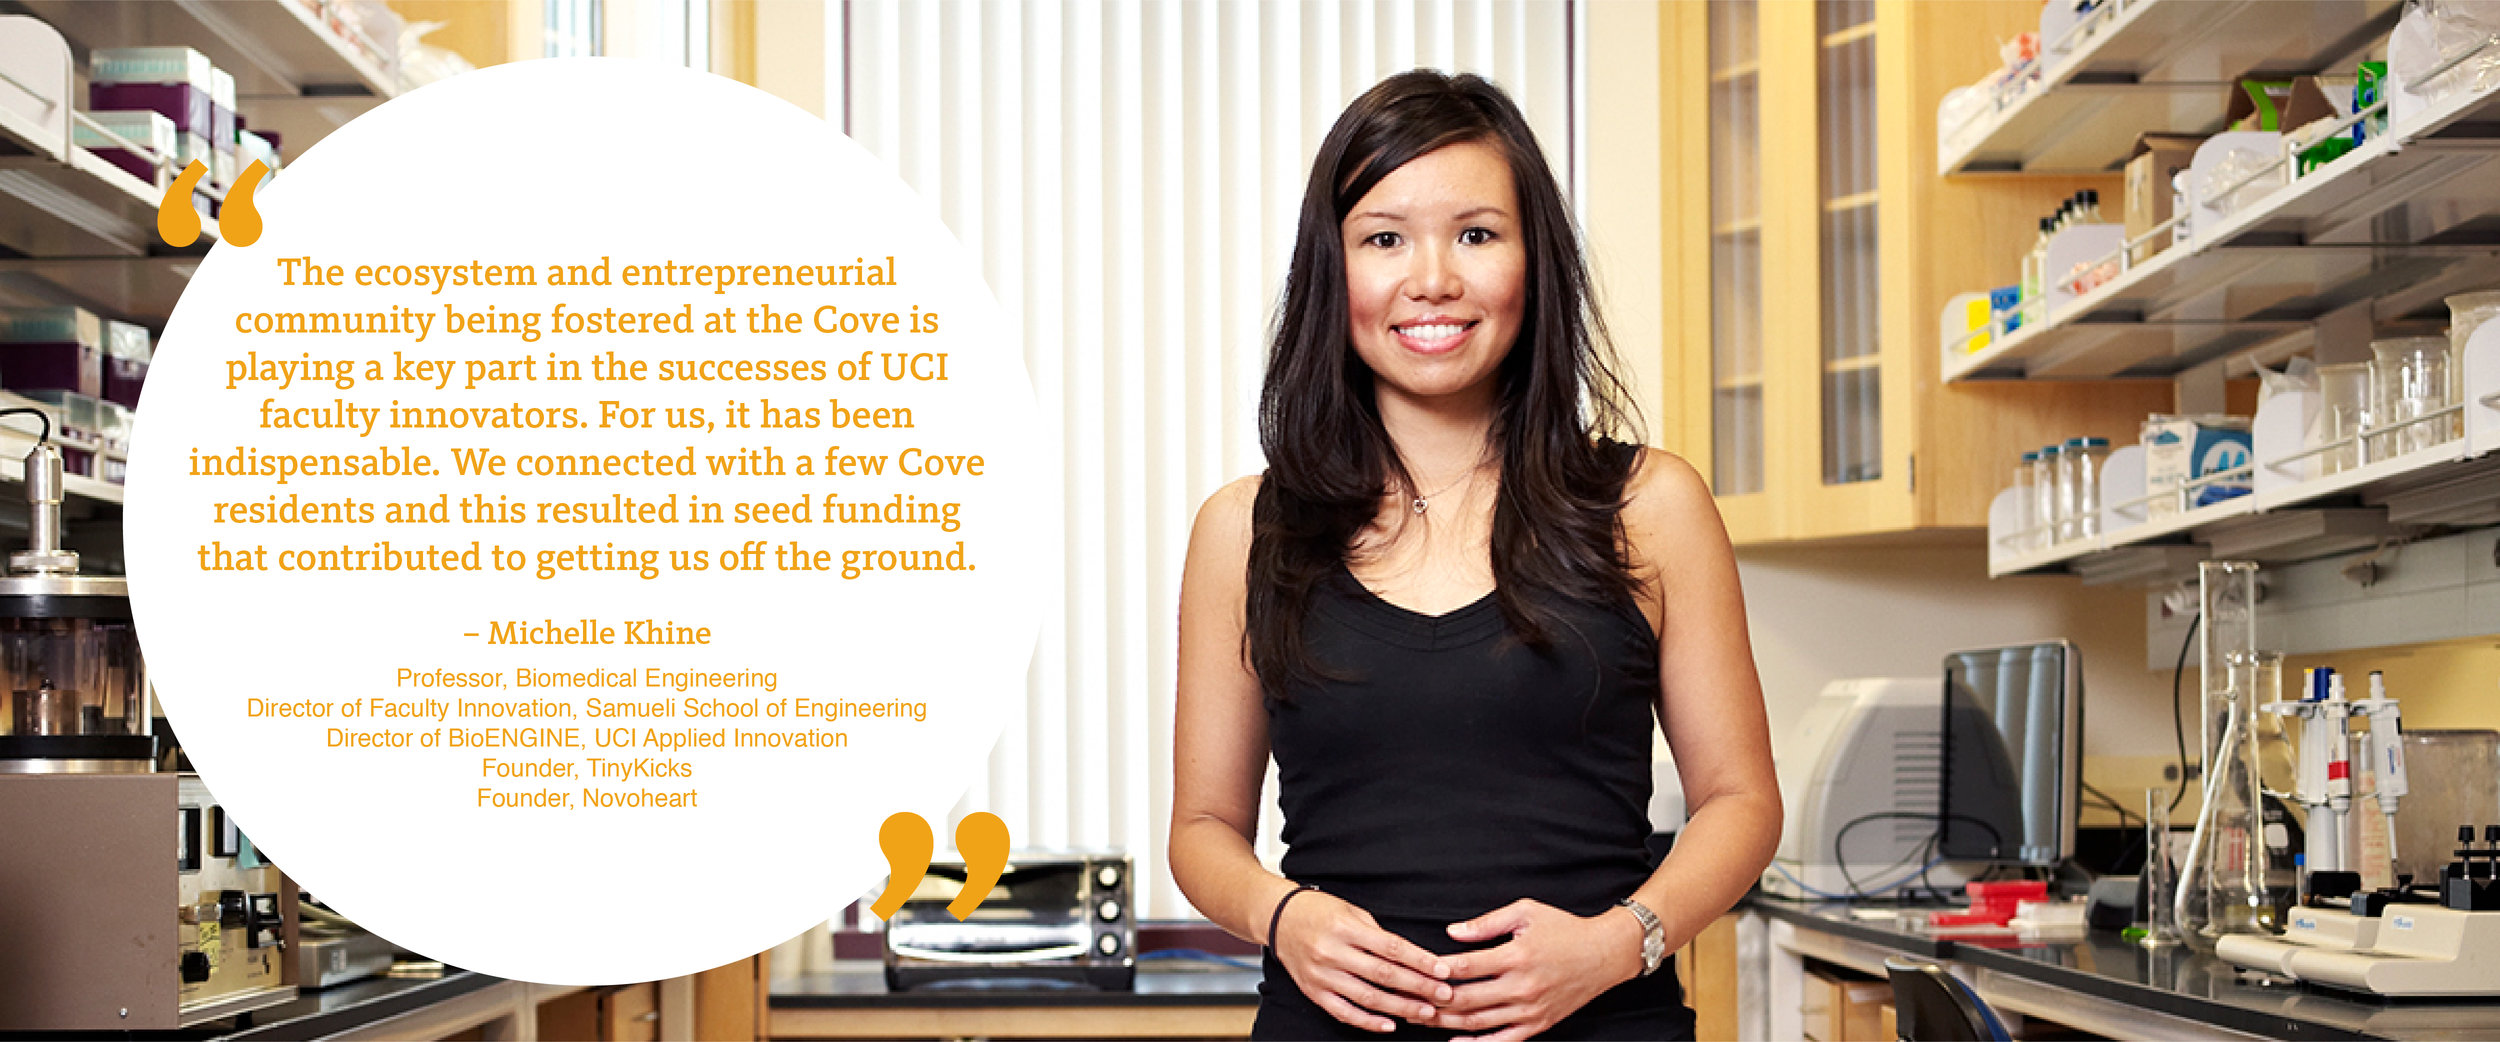 """The ecosystem and entrepreneurial community being fostered at the Cove is playing a key part in the successes of UCI faculty innovators. For us, it has been indispensable. We connected with a few Cove residents and this resulted in seed funding that contributed to getting us off the ground.""– Michelle Khine, Ph.D."